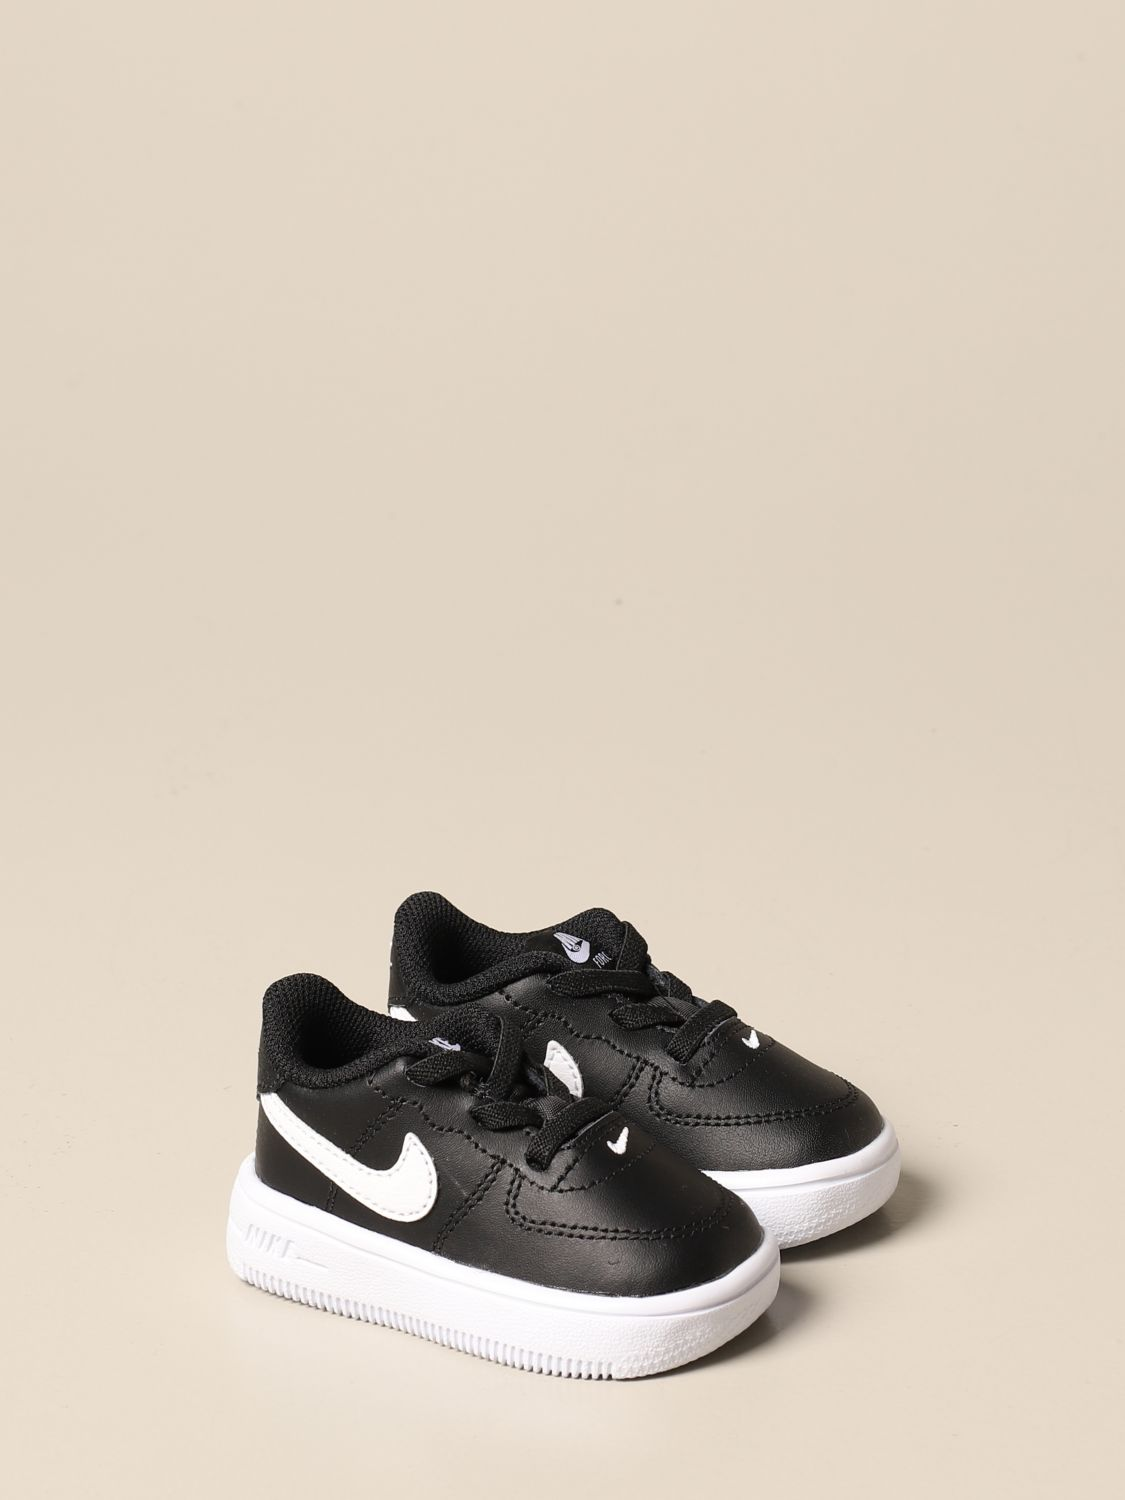 Chaussures Nike: Chaussures enfant Nike noir 2